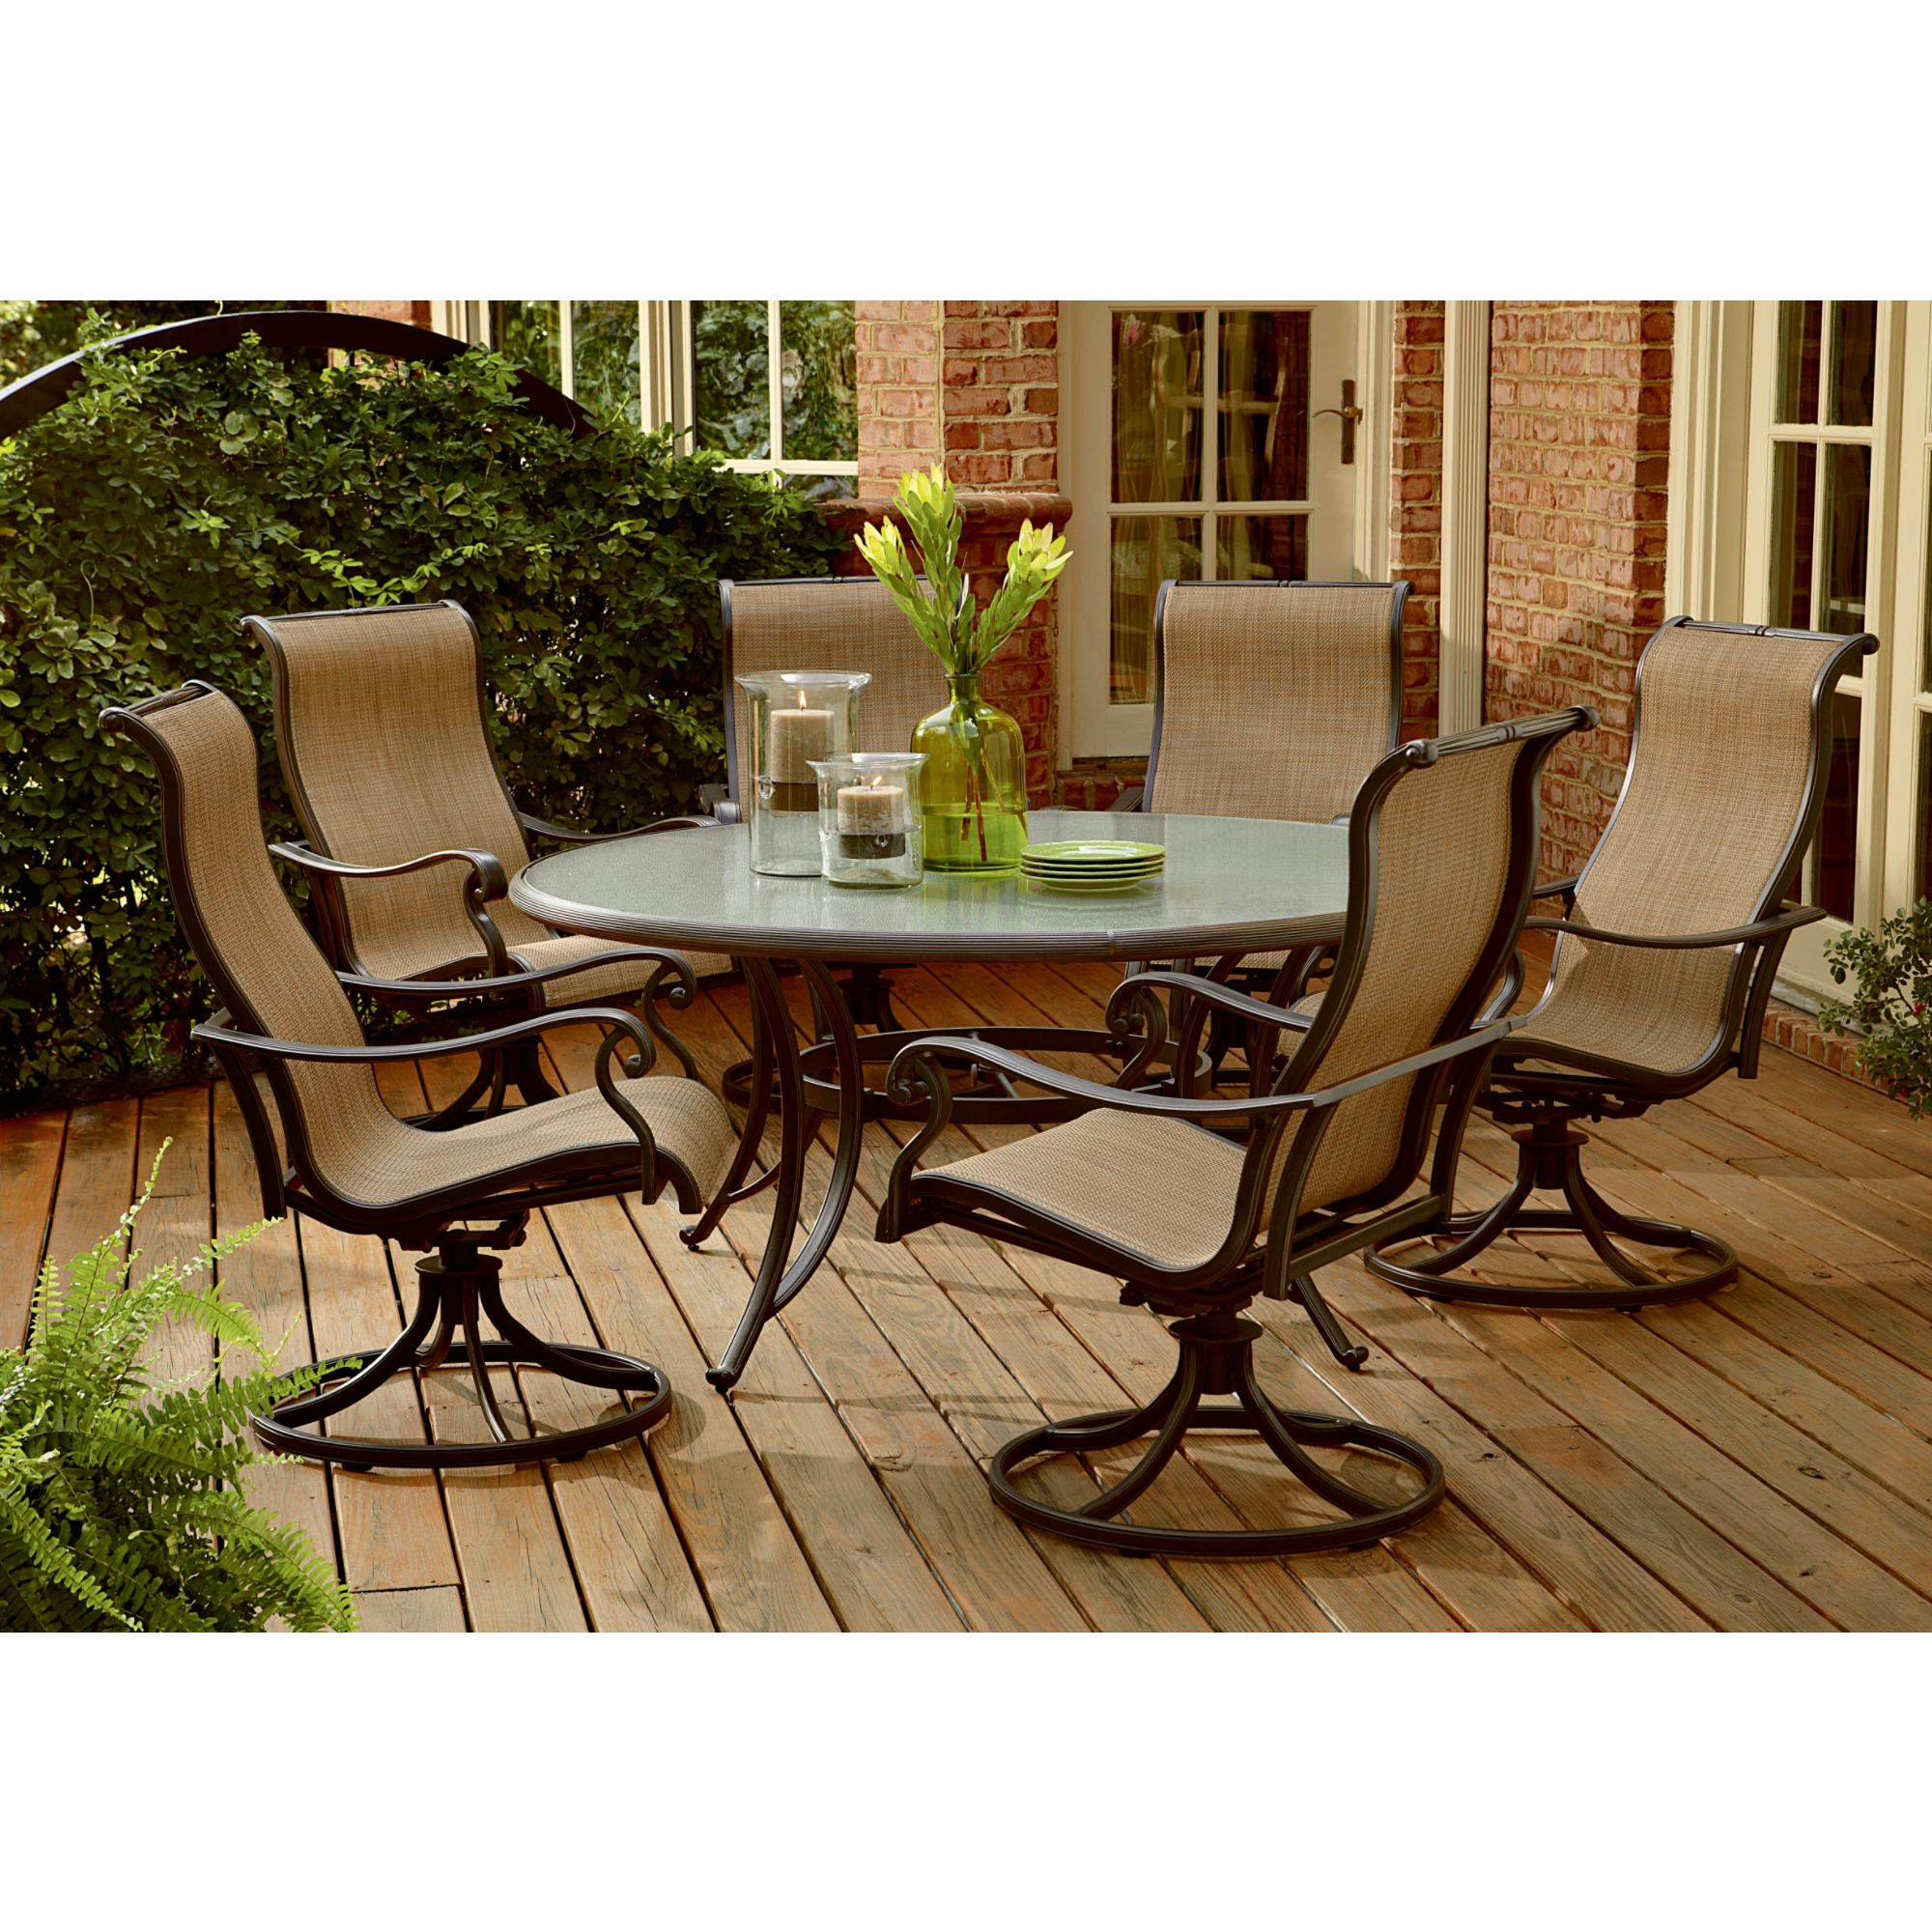 7 Piece Round Patio Dining Set Panorama 7 Piece Patio Dining Set Improve Your Life And